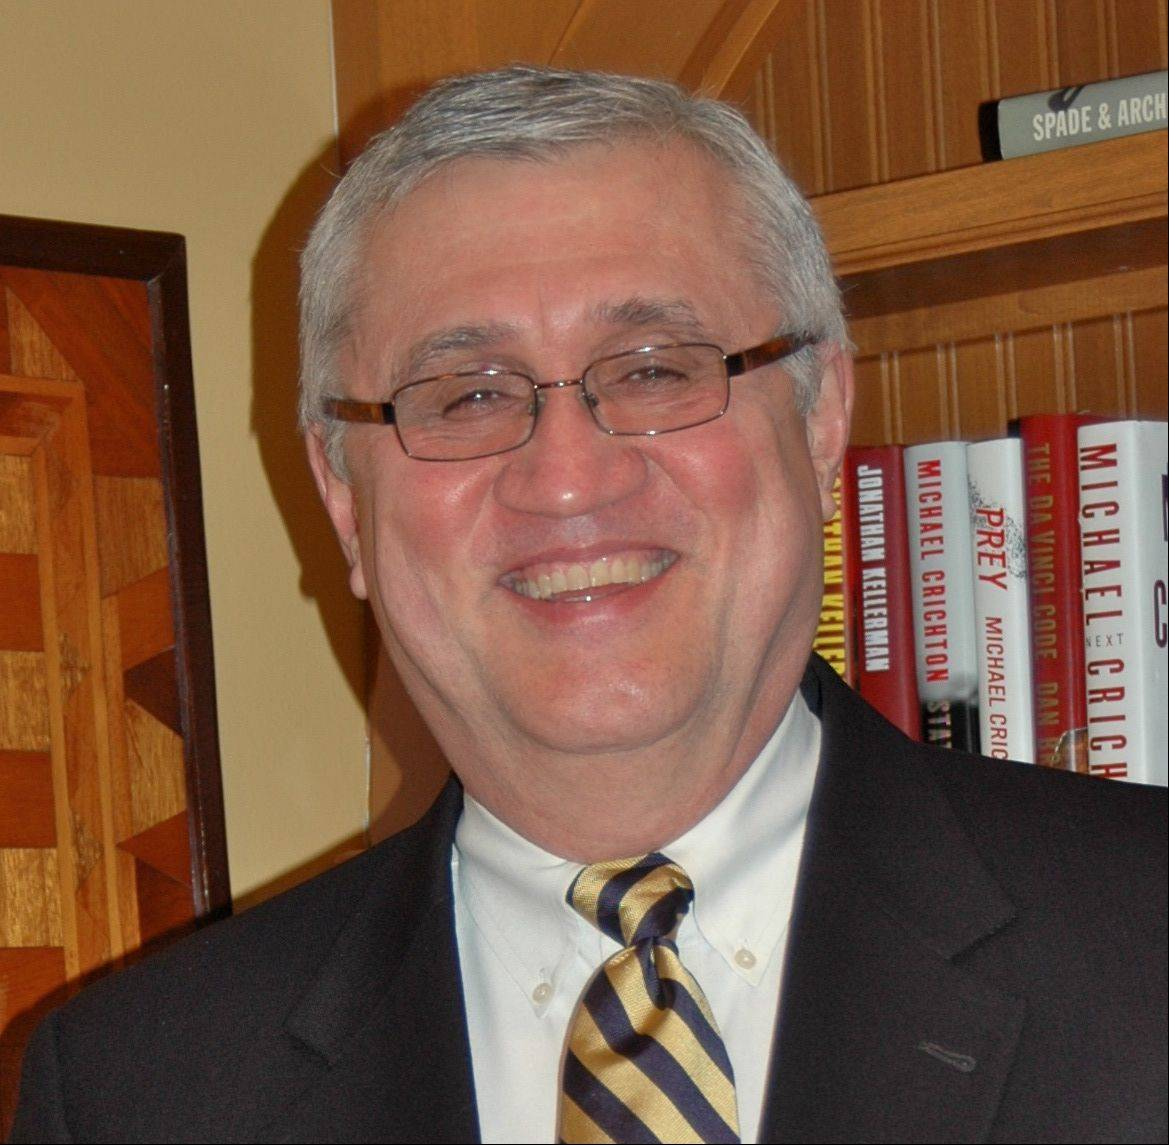 St. Charles Alderman Raymond Rogina, candidate for mayor